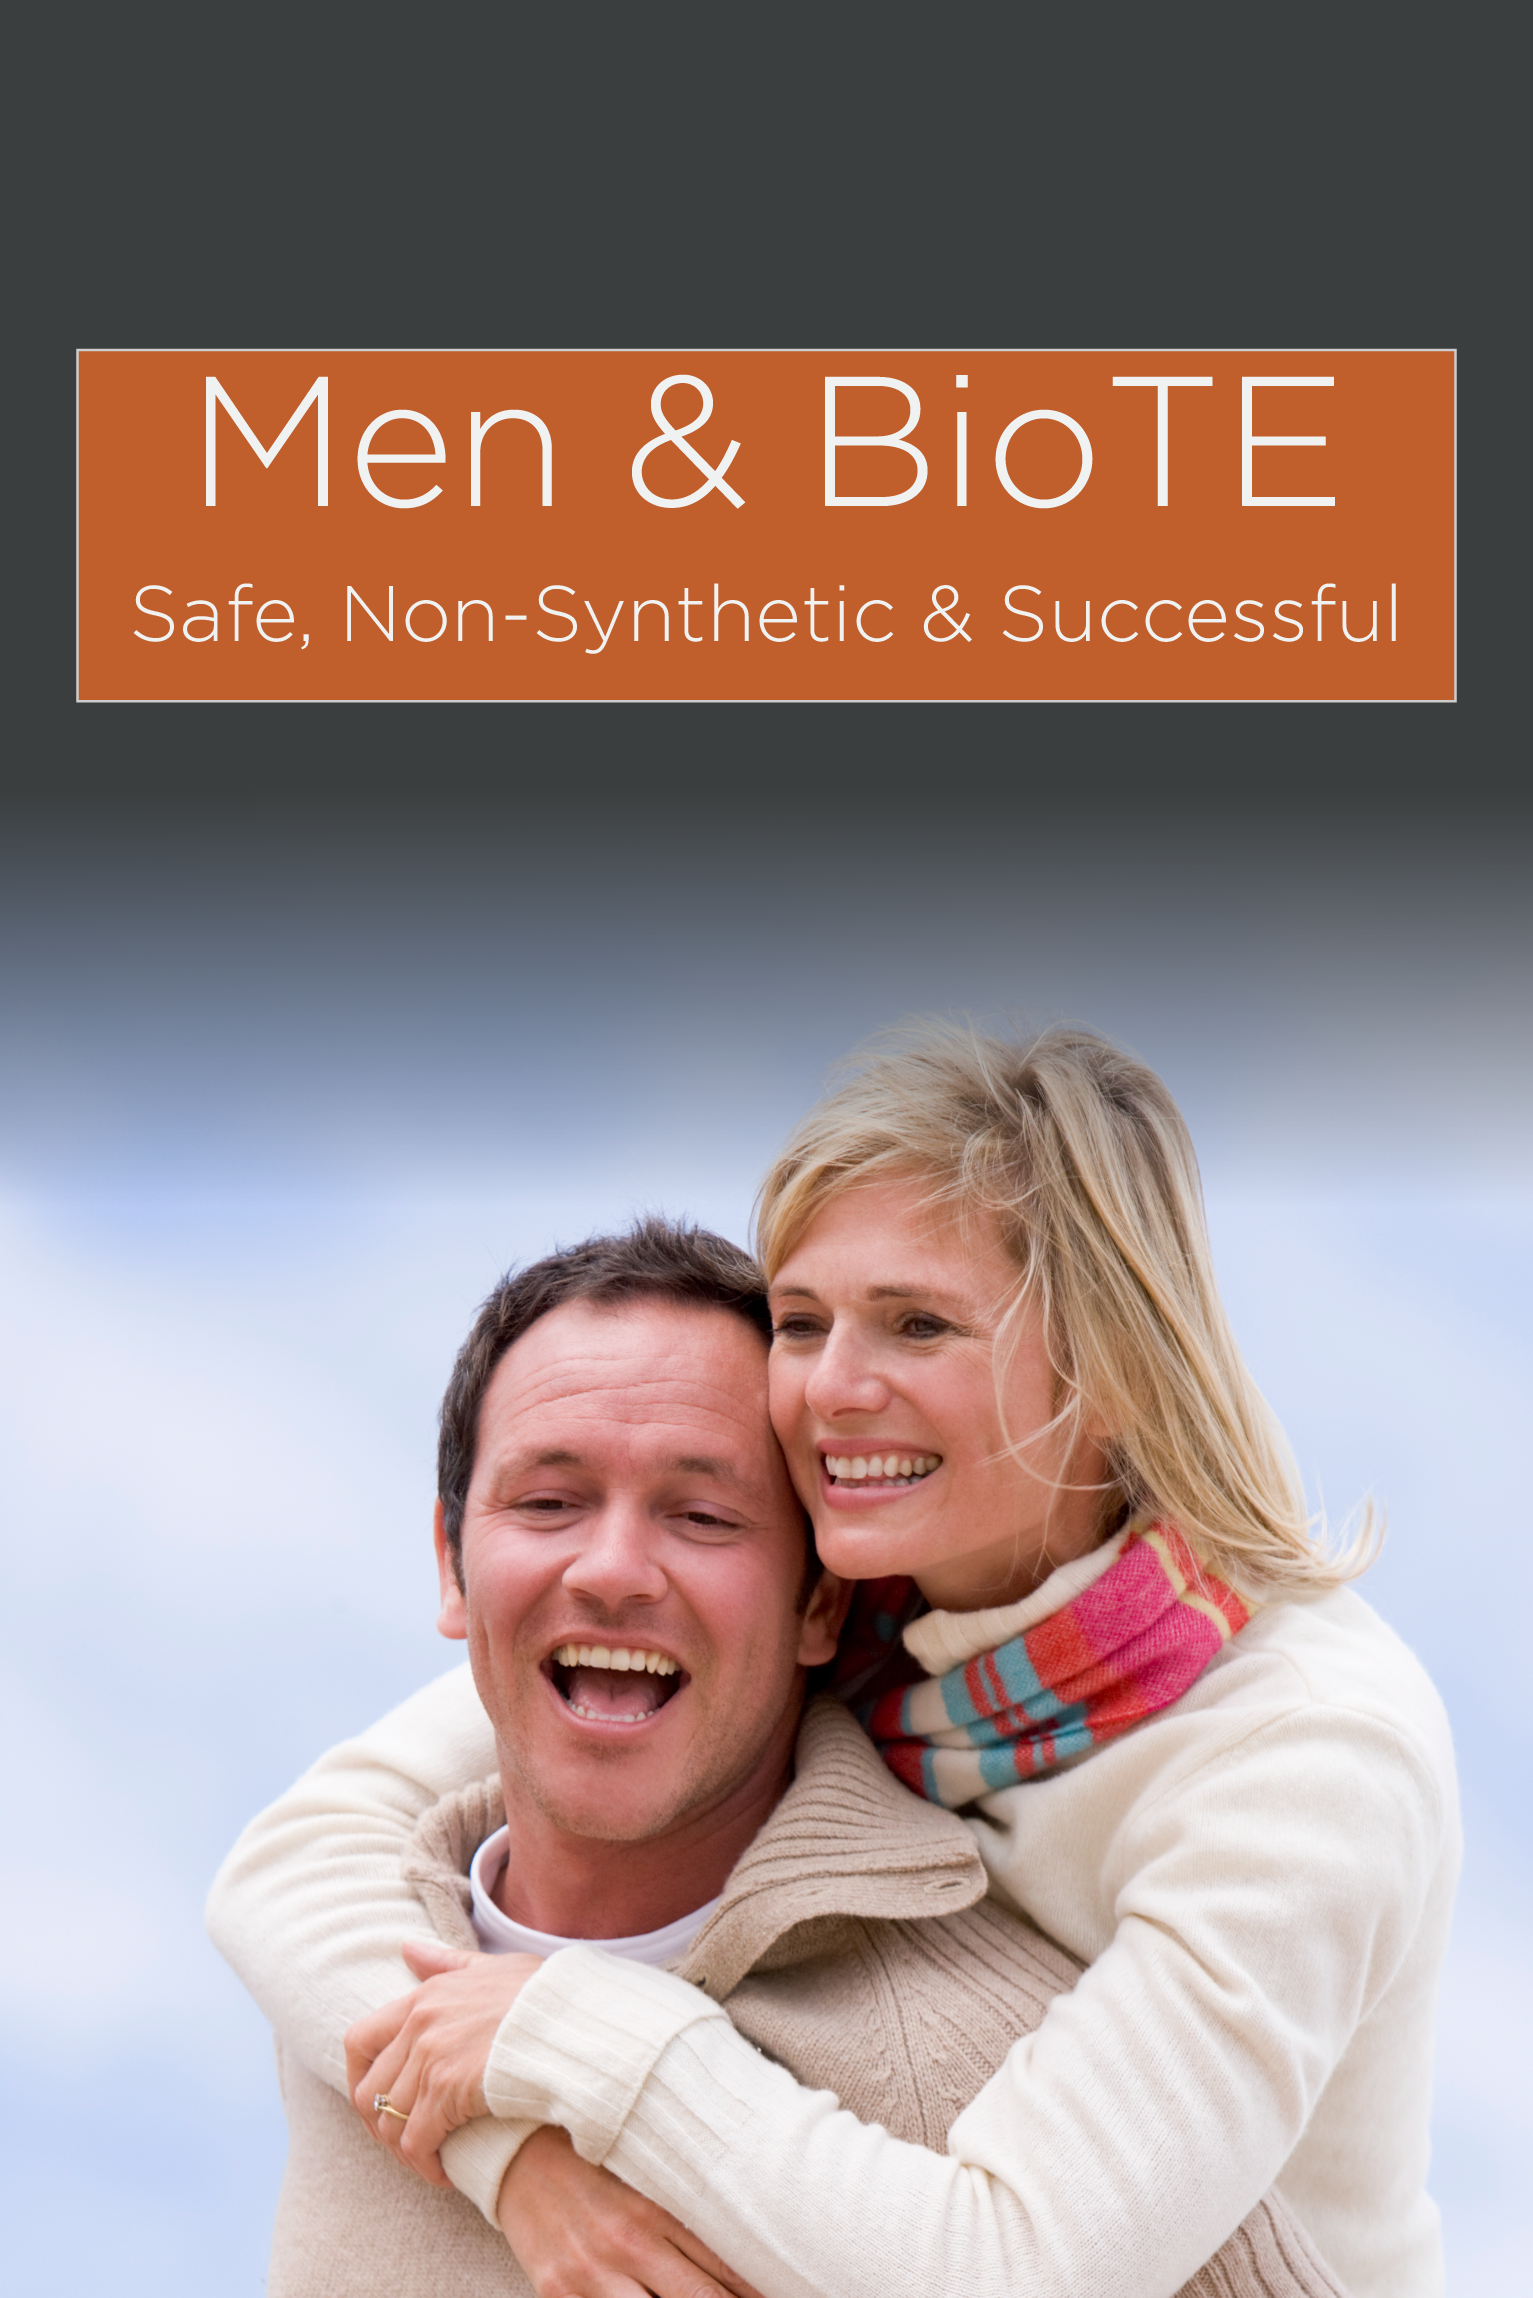 Men & Biote. Hill Country Vitality is a BioTe provider in the Stone Oak & San Antonio Area.